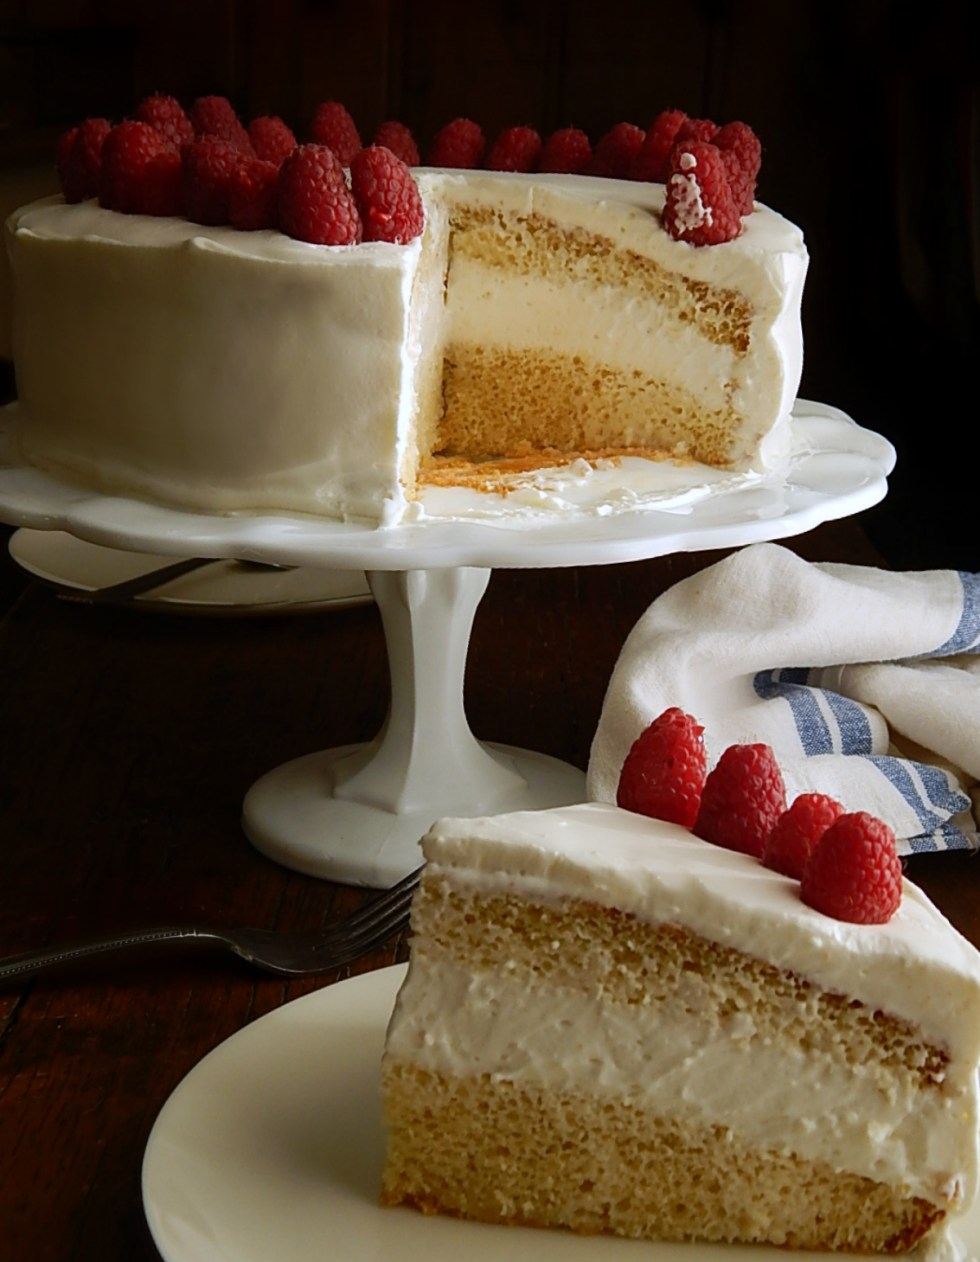 Caffe Lattes Tres Leches Cake 6